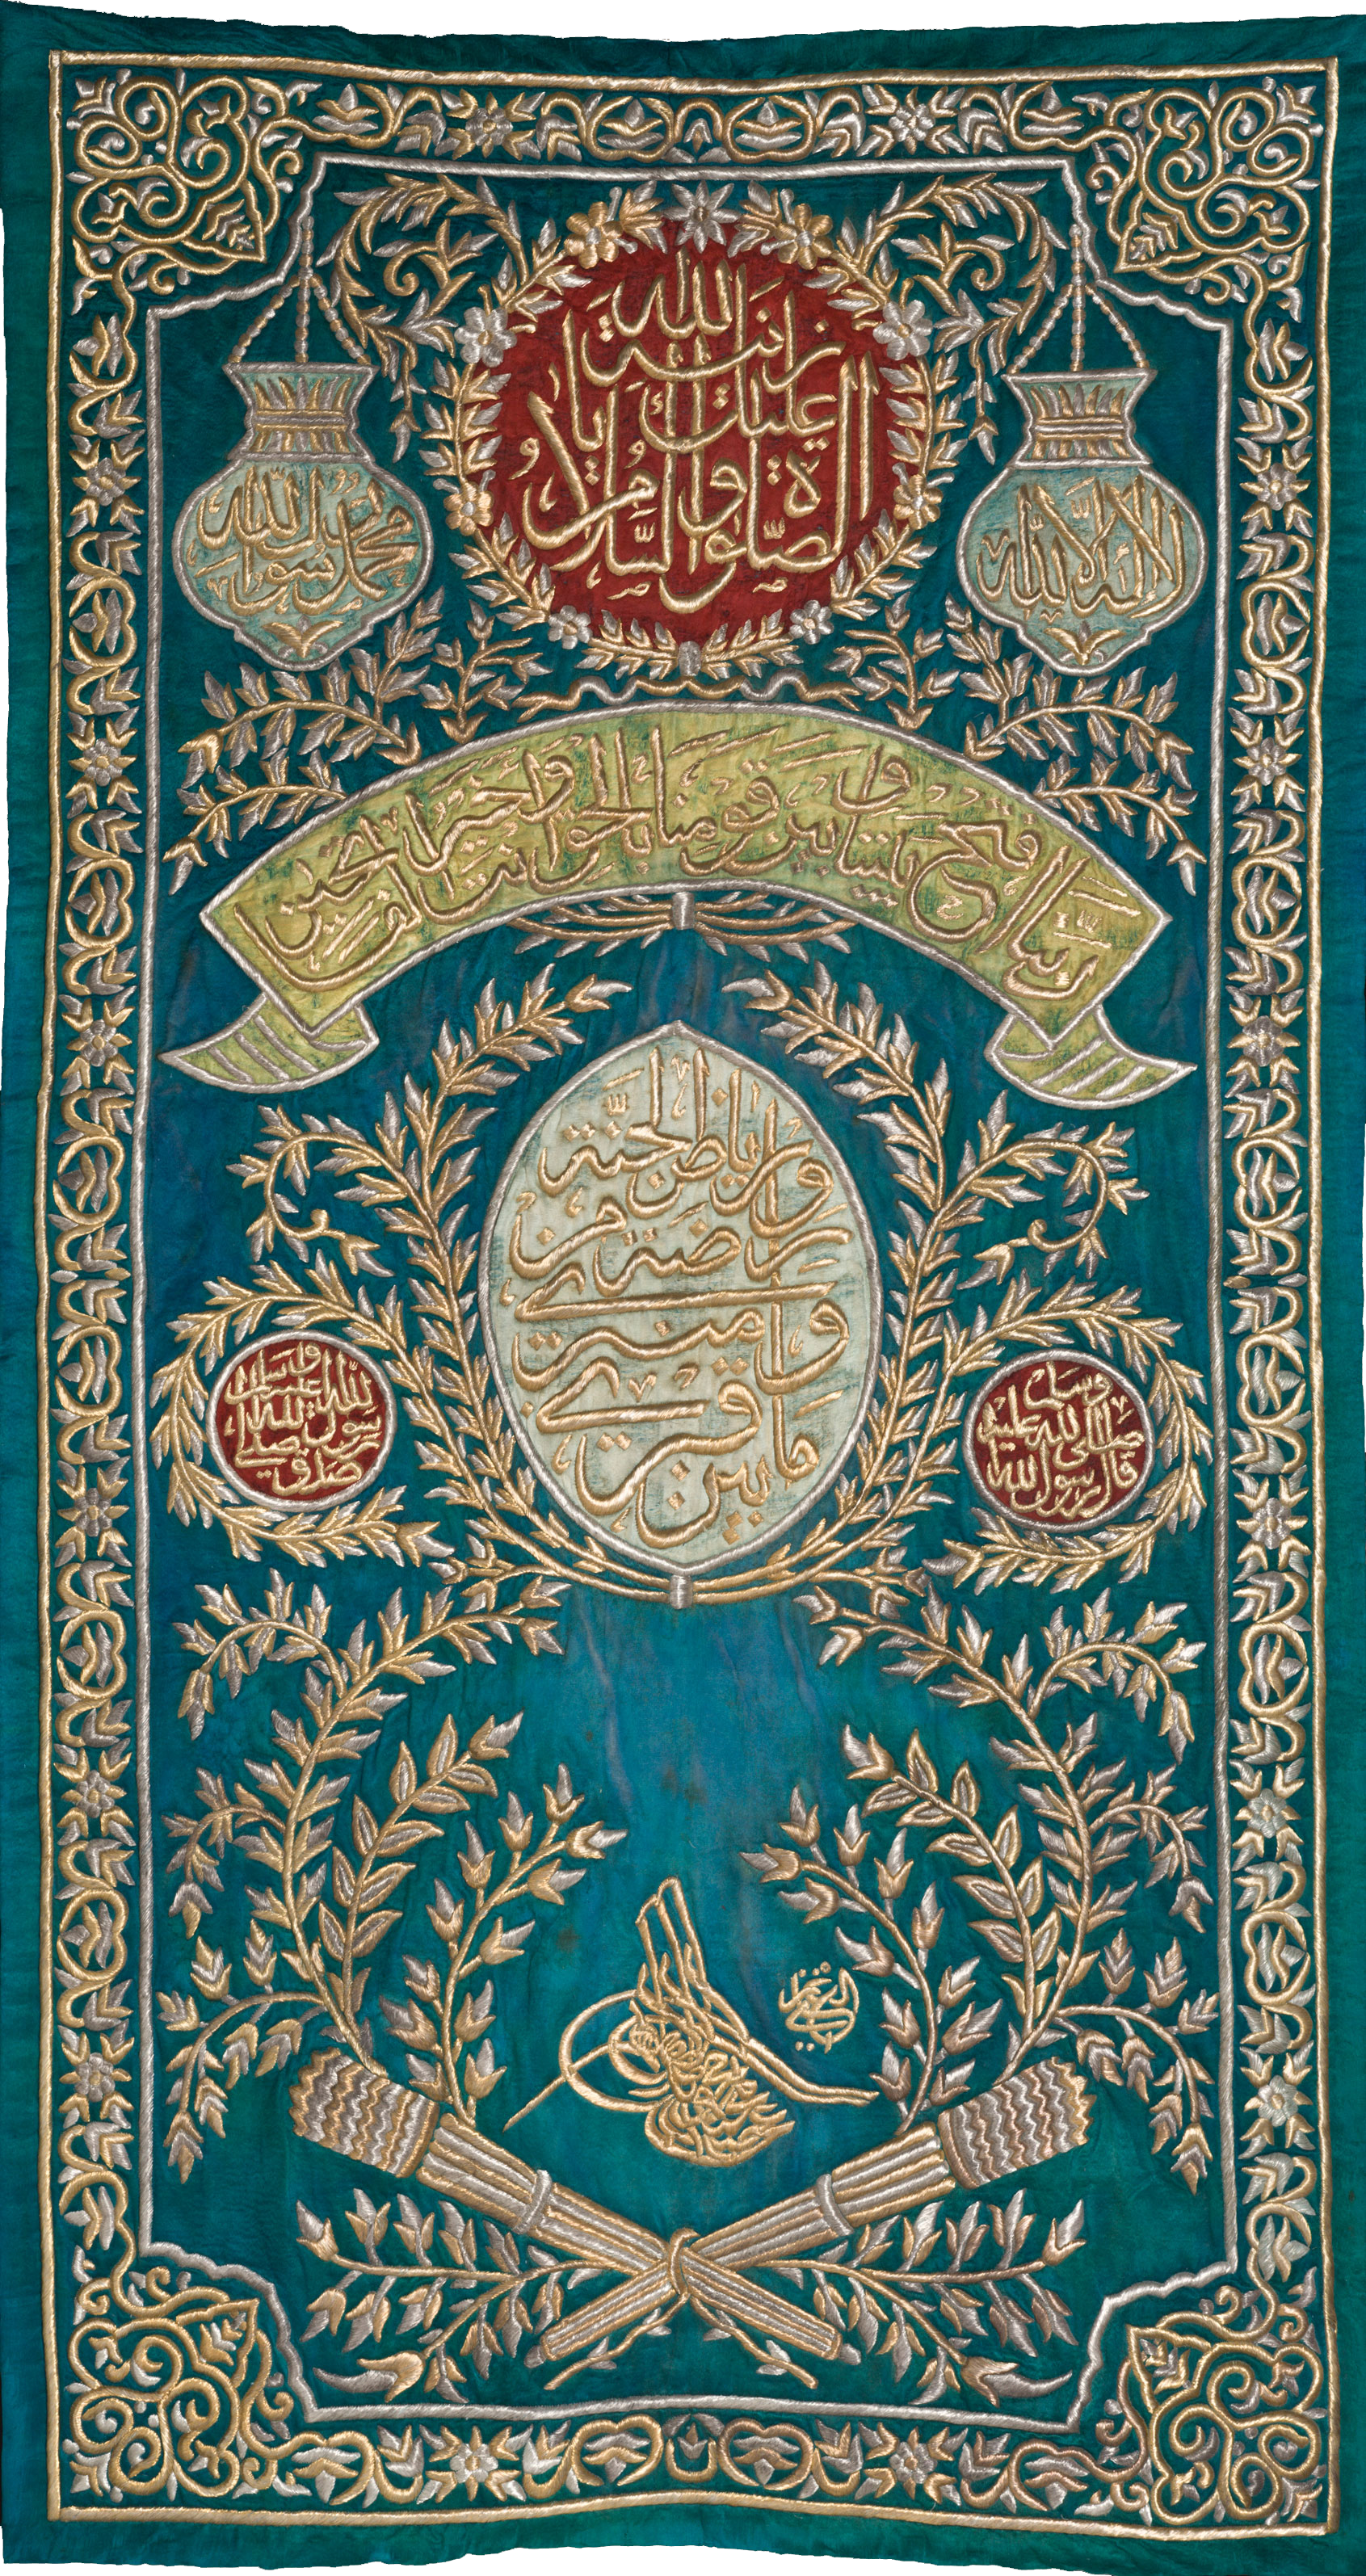 Sitarah for the mosque of the Prophet in Medina